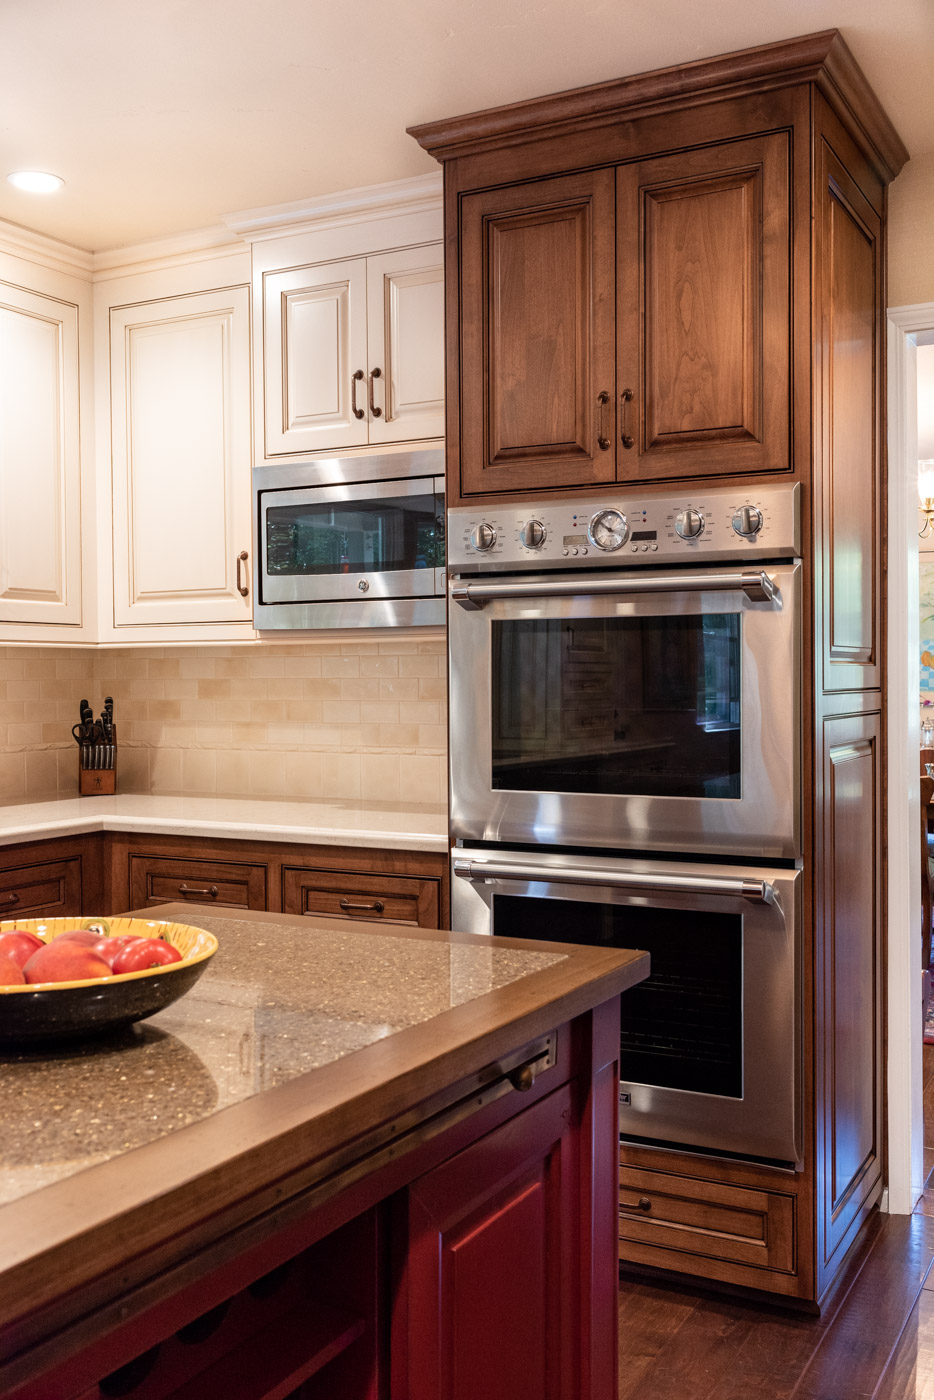 English Country custom kitchen cabinets with double ovens